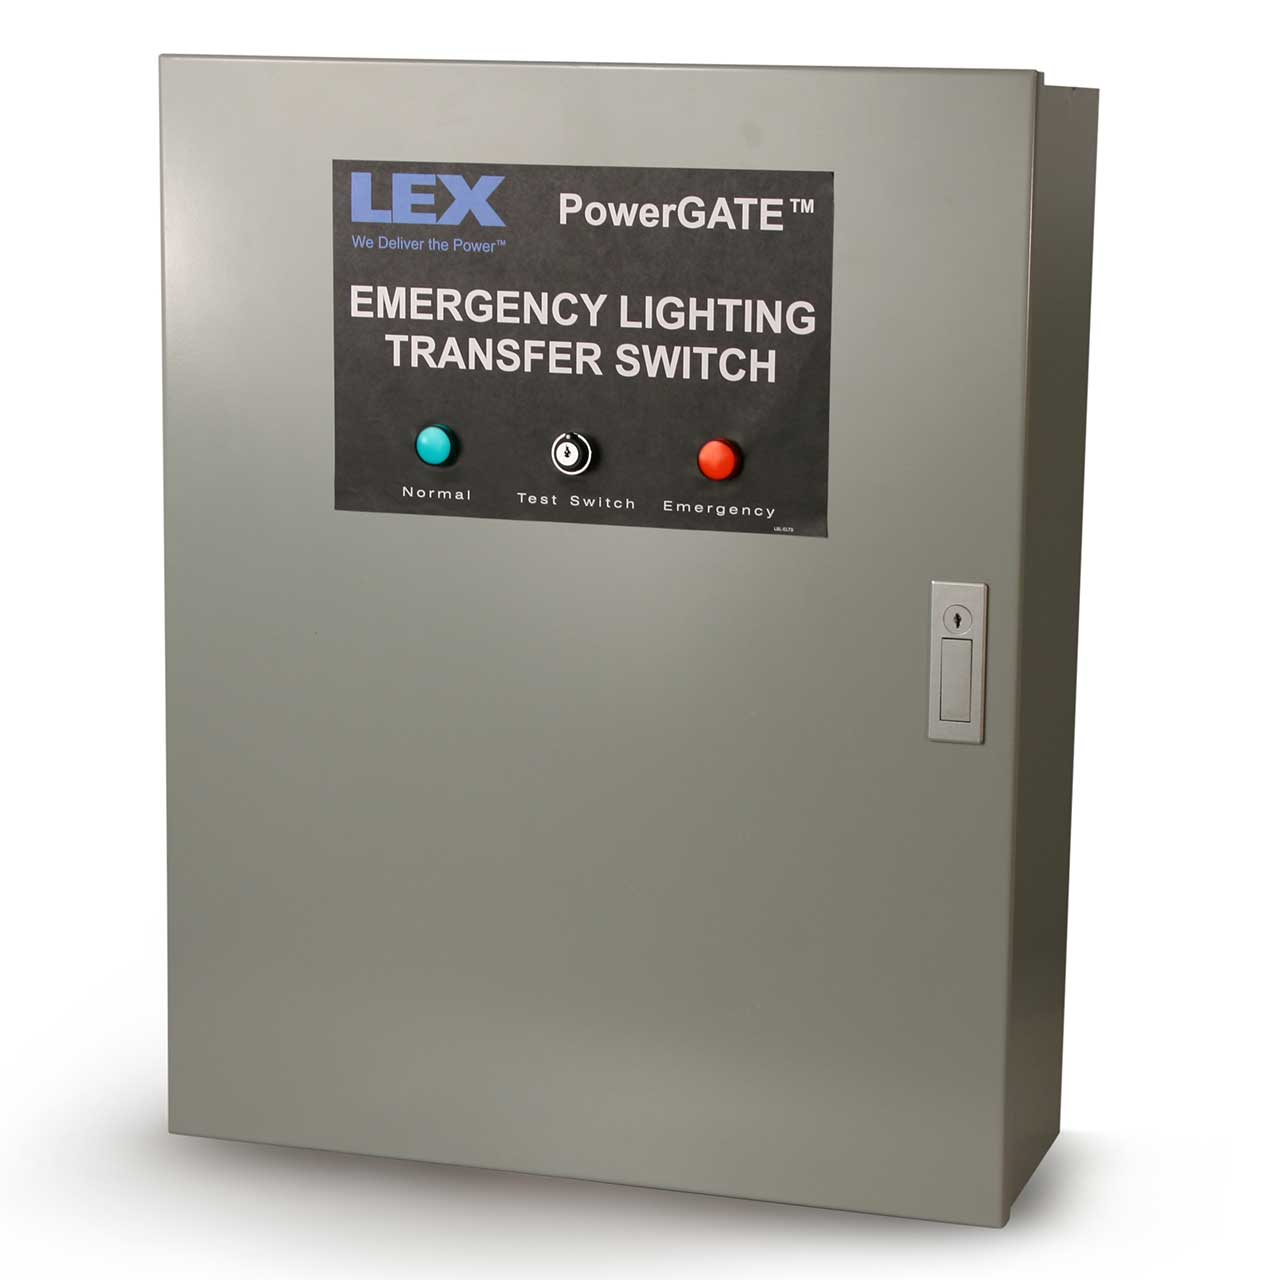 Emergency Lighting Transfer Switch